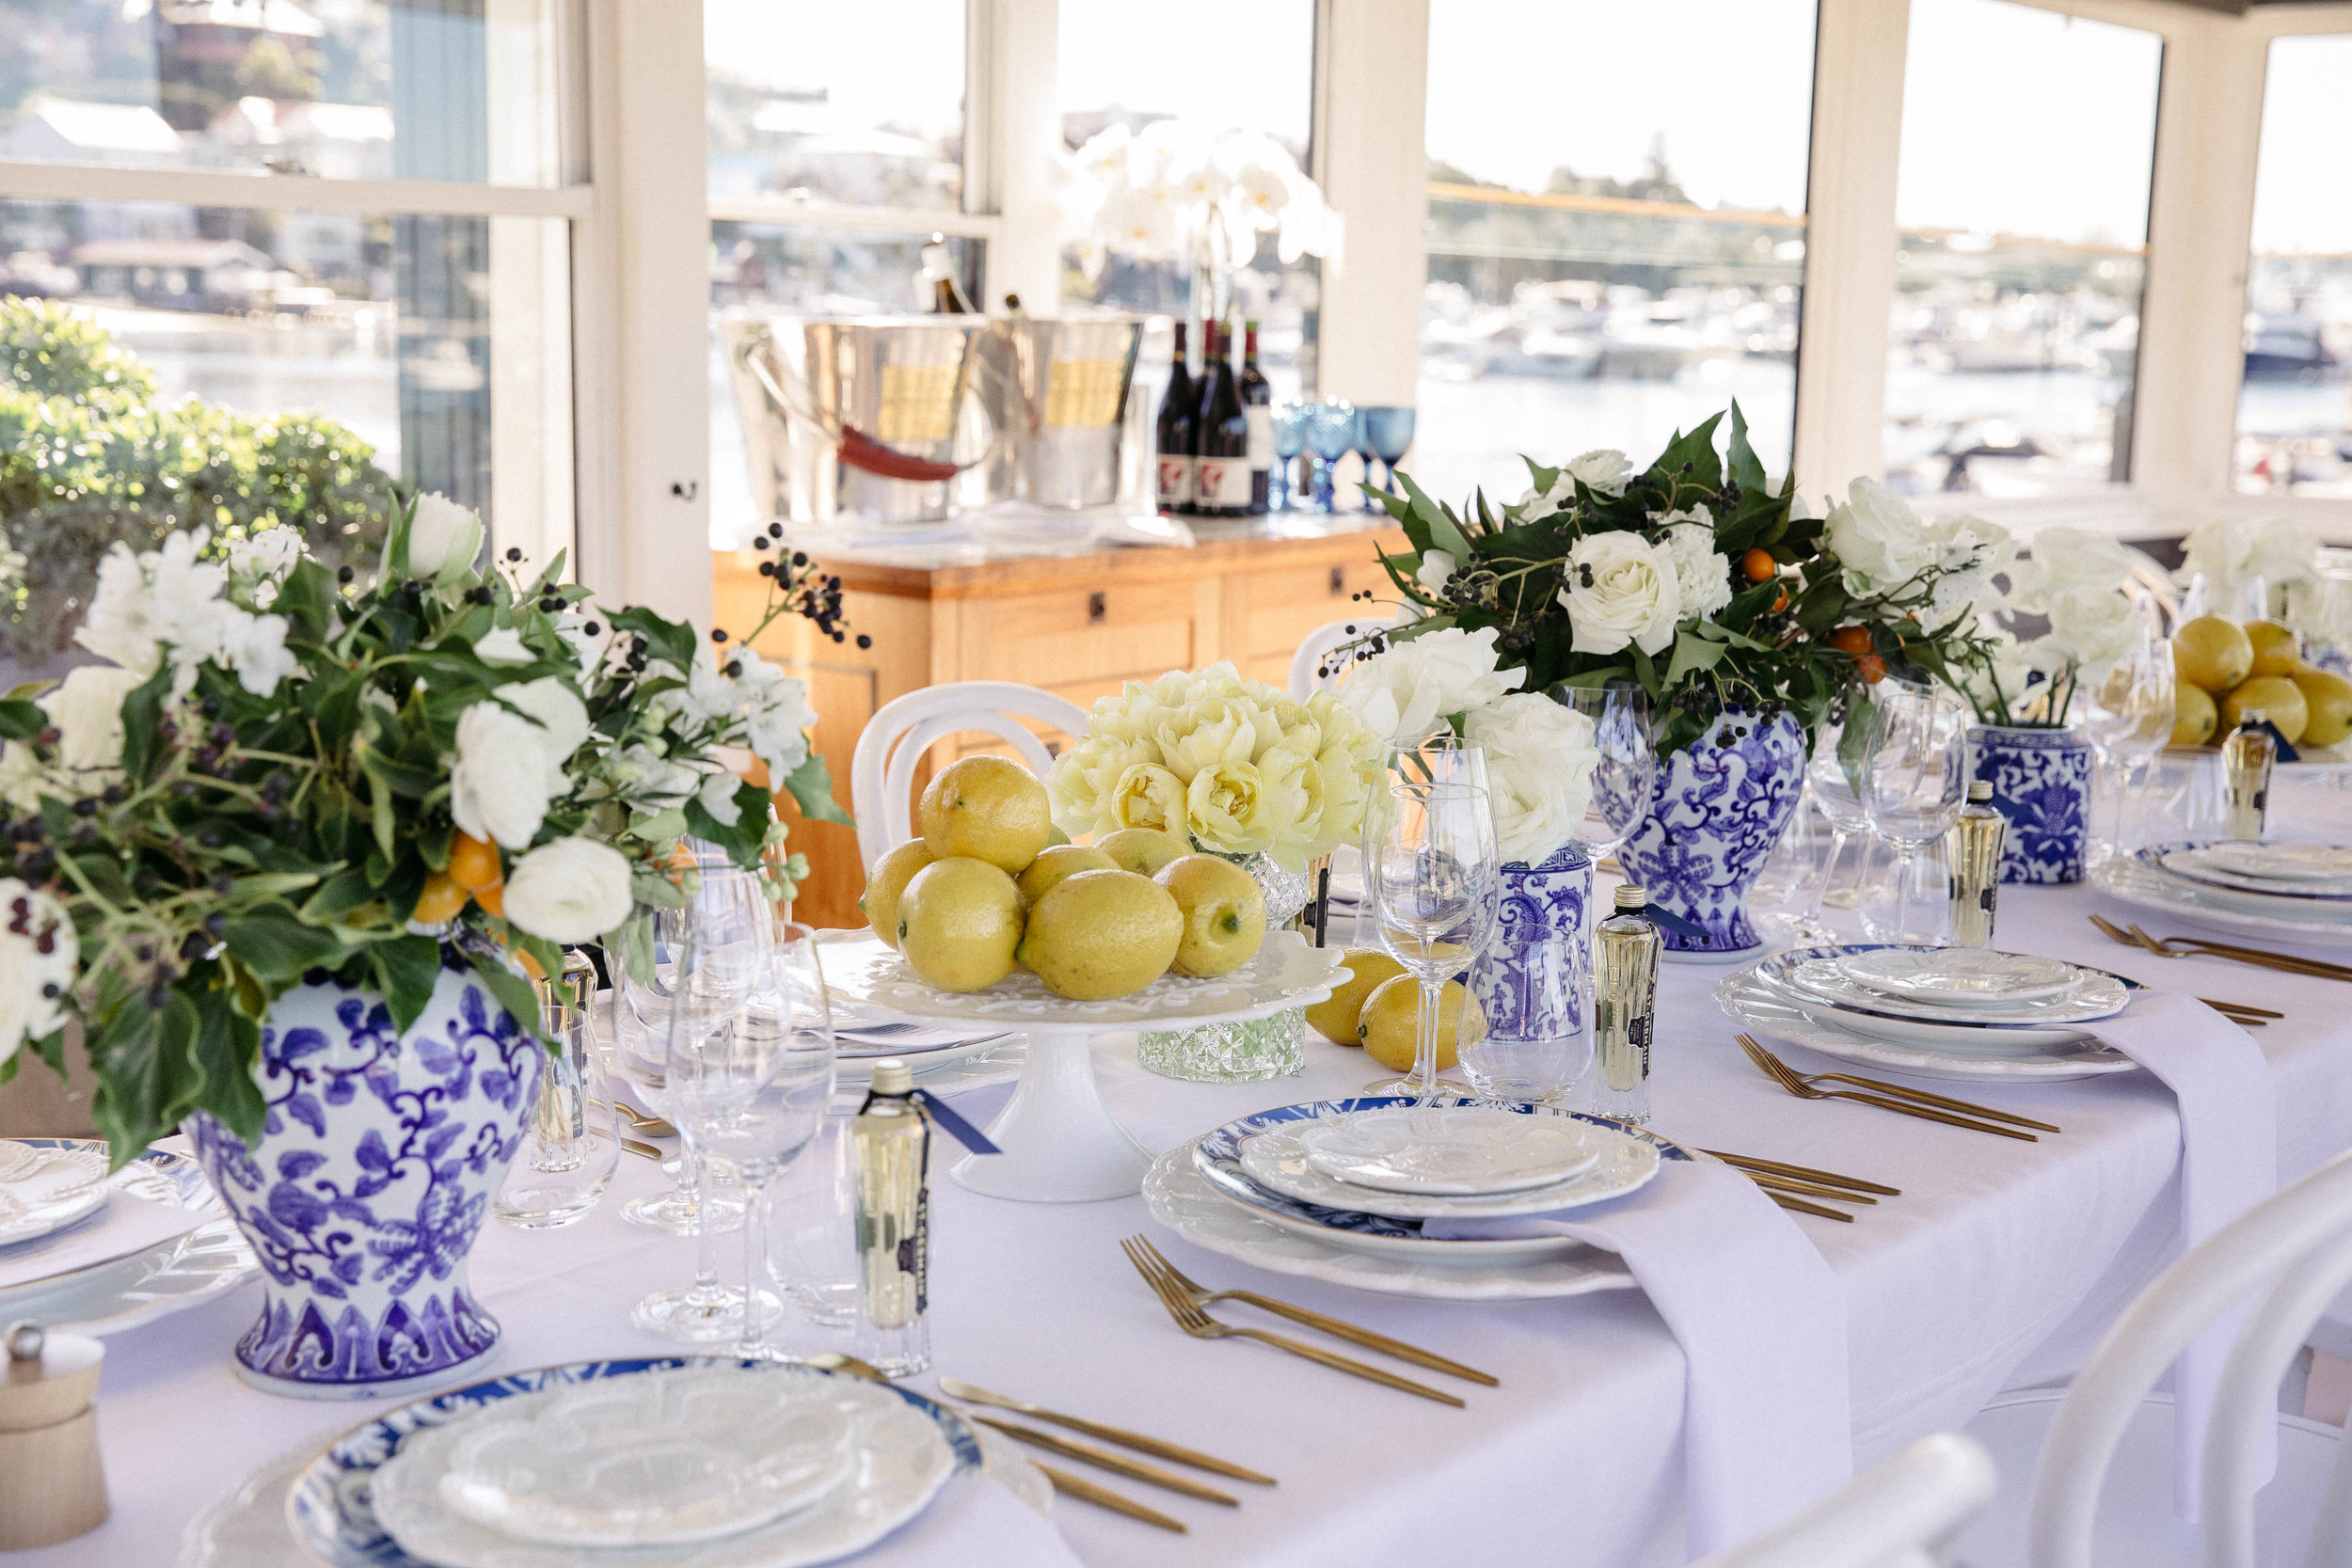 The Curated Life - French Riviera Table Setting For Denise's at Regatta Rose Bay 4.jpg